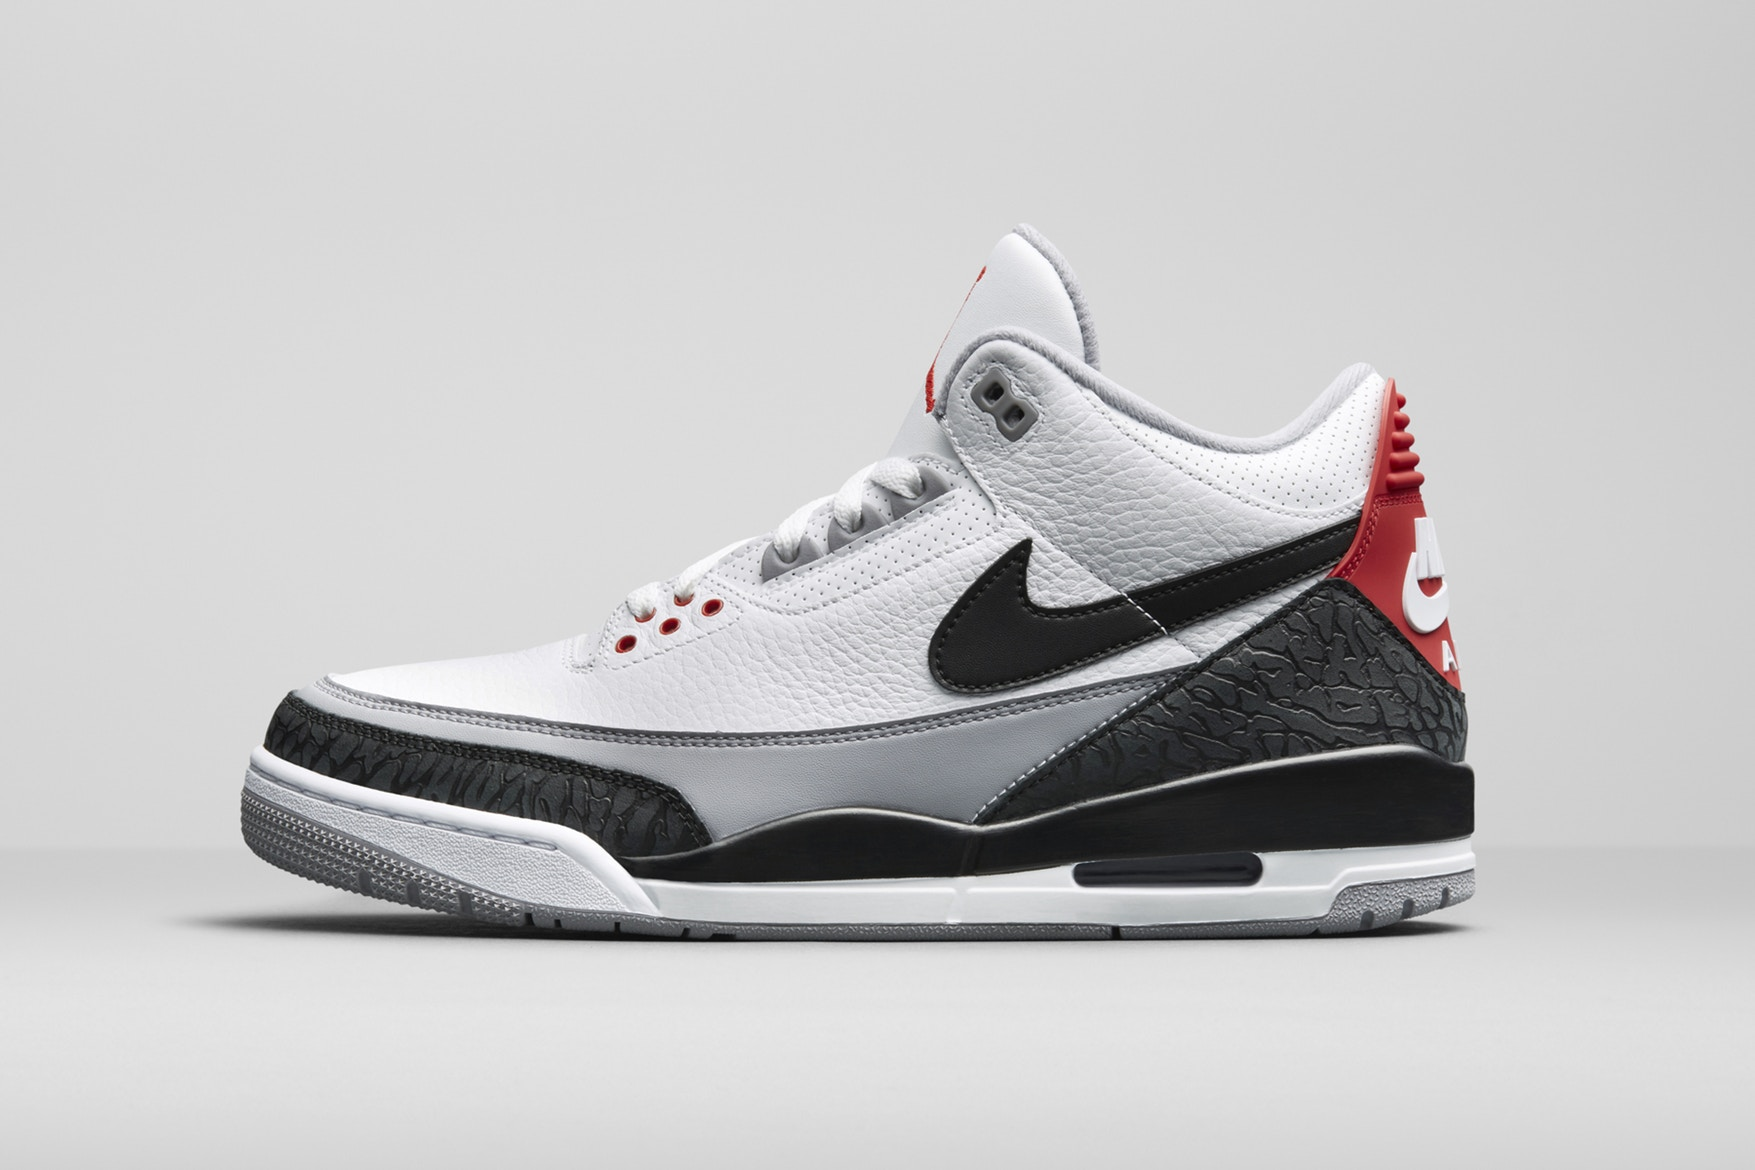 nike-air-jordan-3-prototype-t